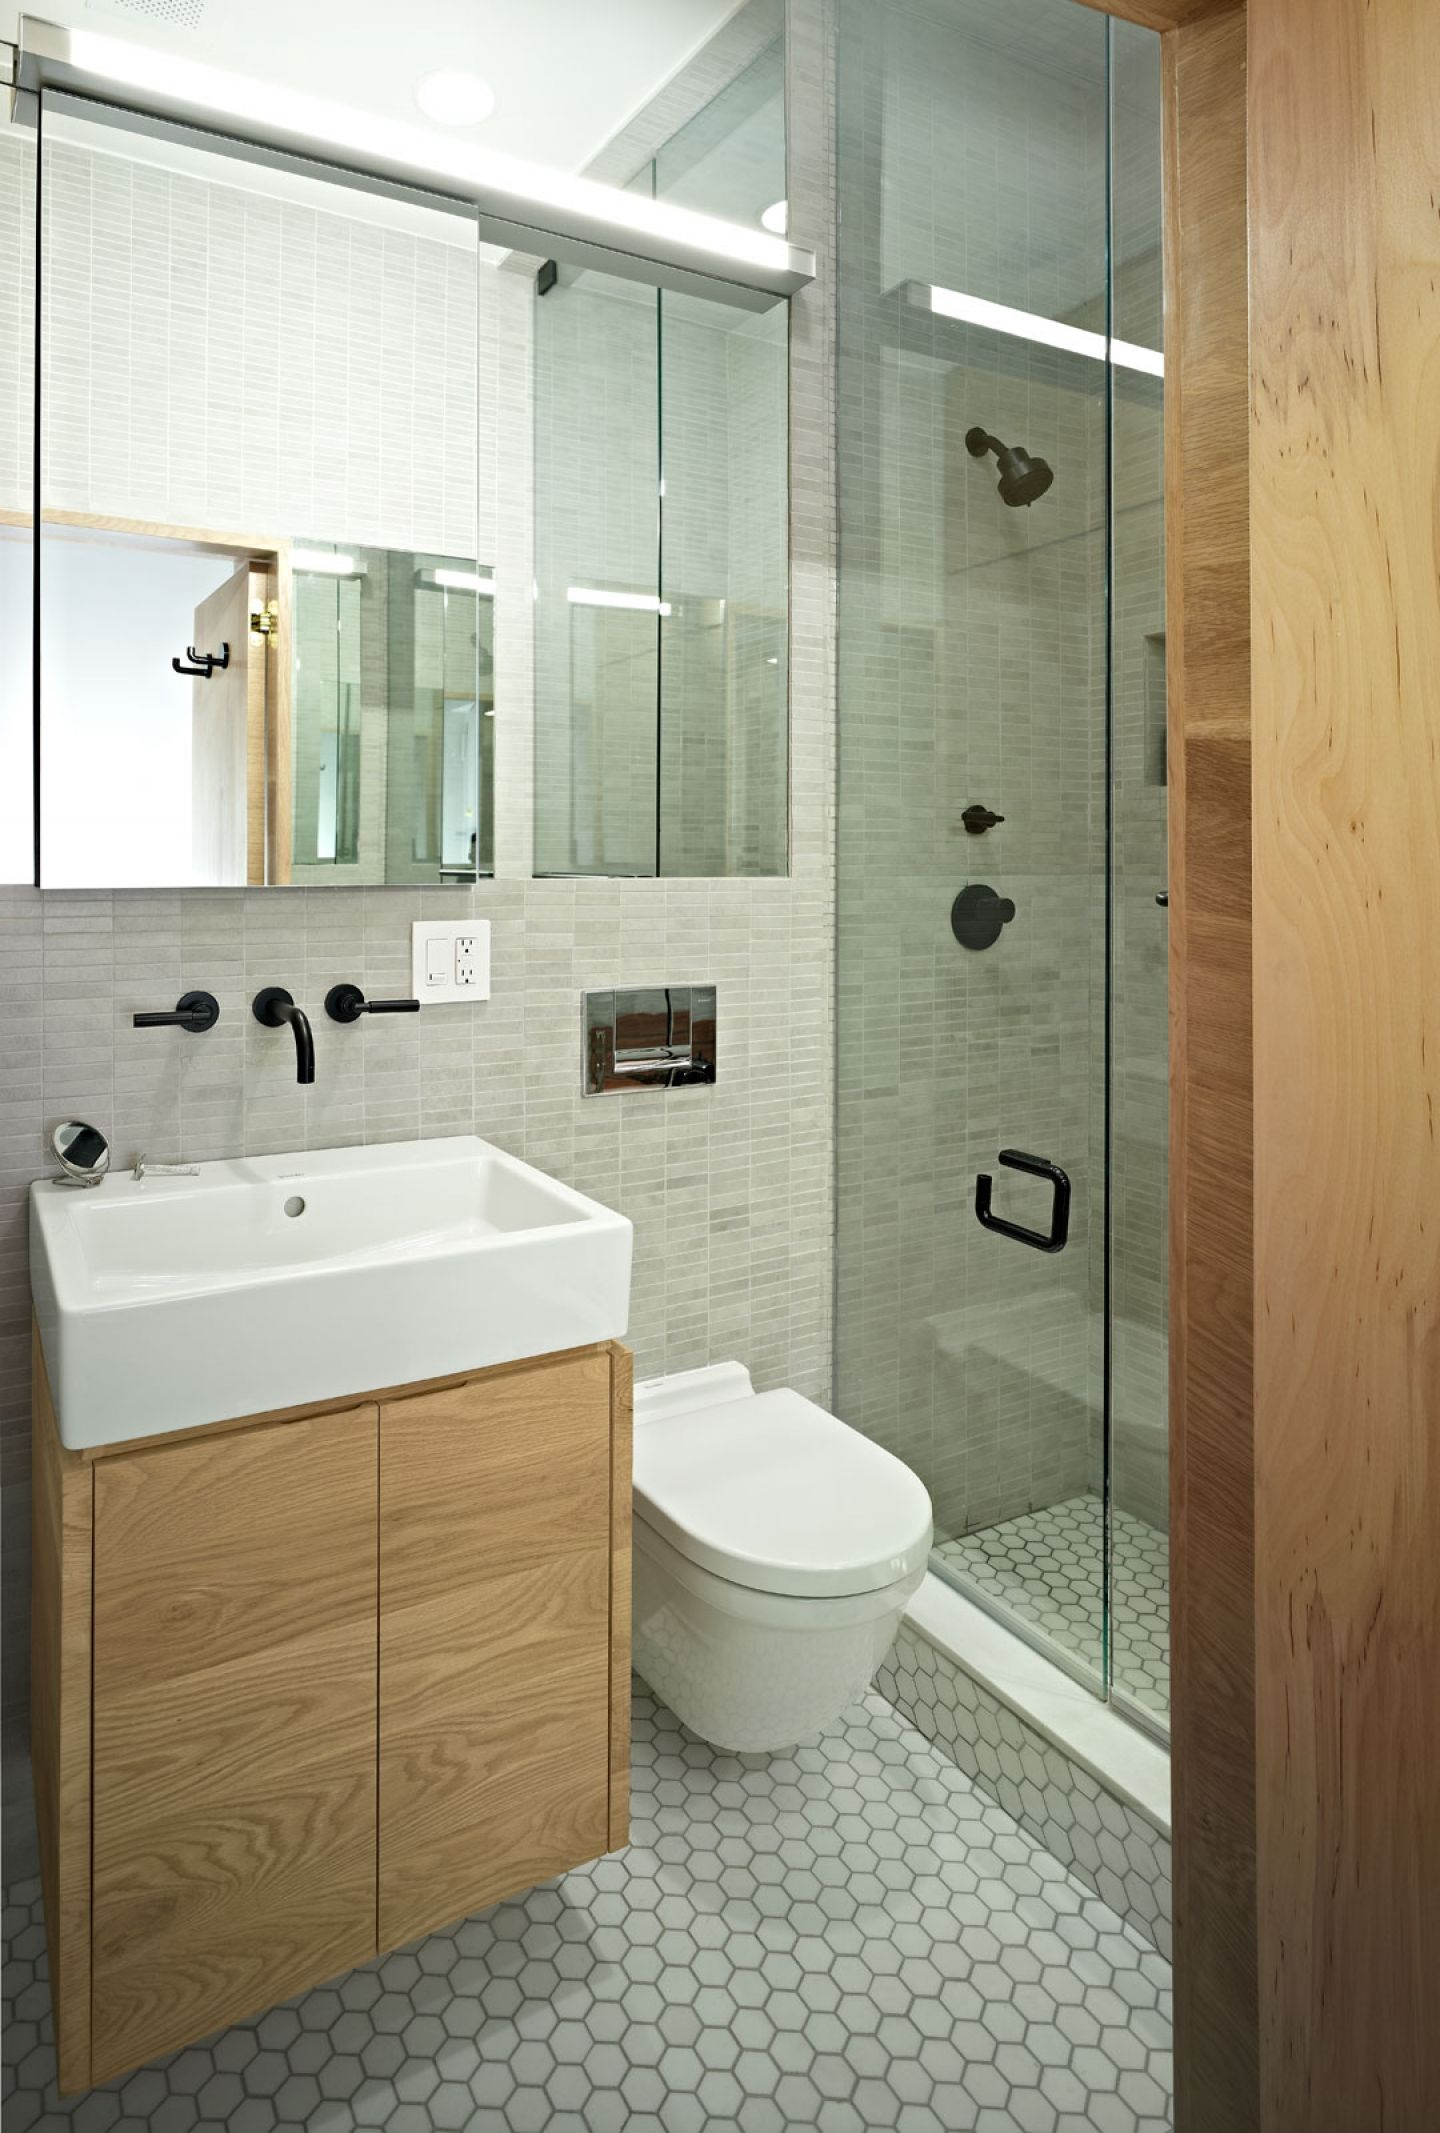 Bathroom Shelf Design Ideas Rustic Bathroom Storage Ideas With Best Tiniest Bathroom Designs Design Inspiration